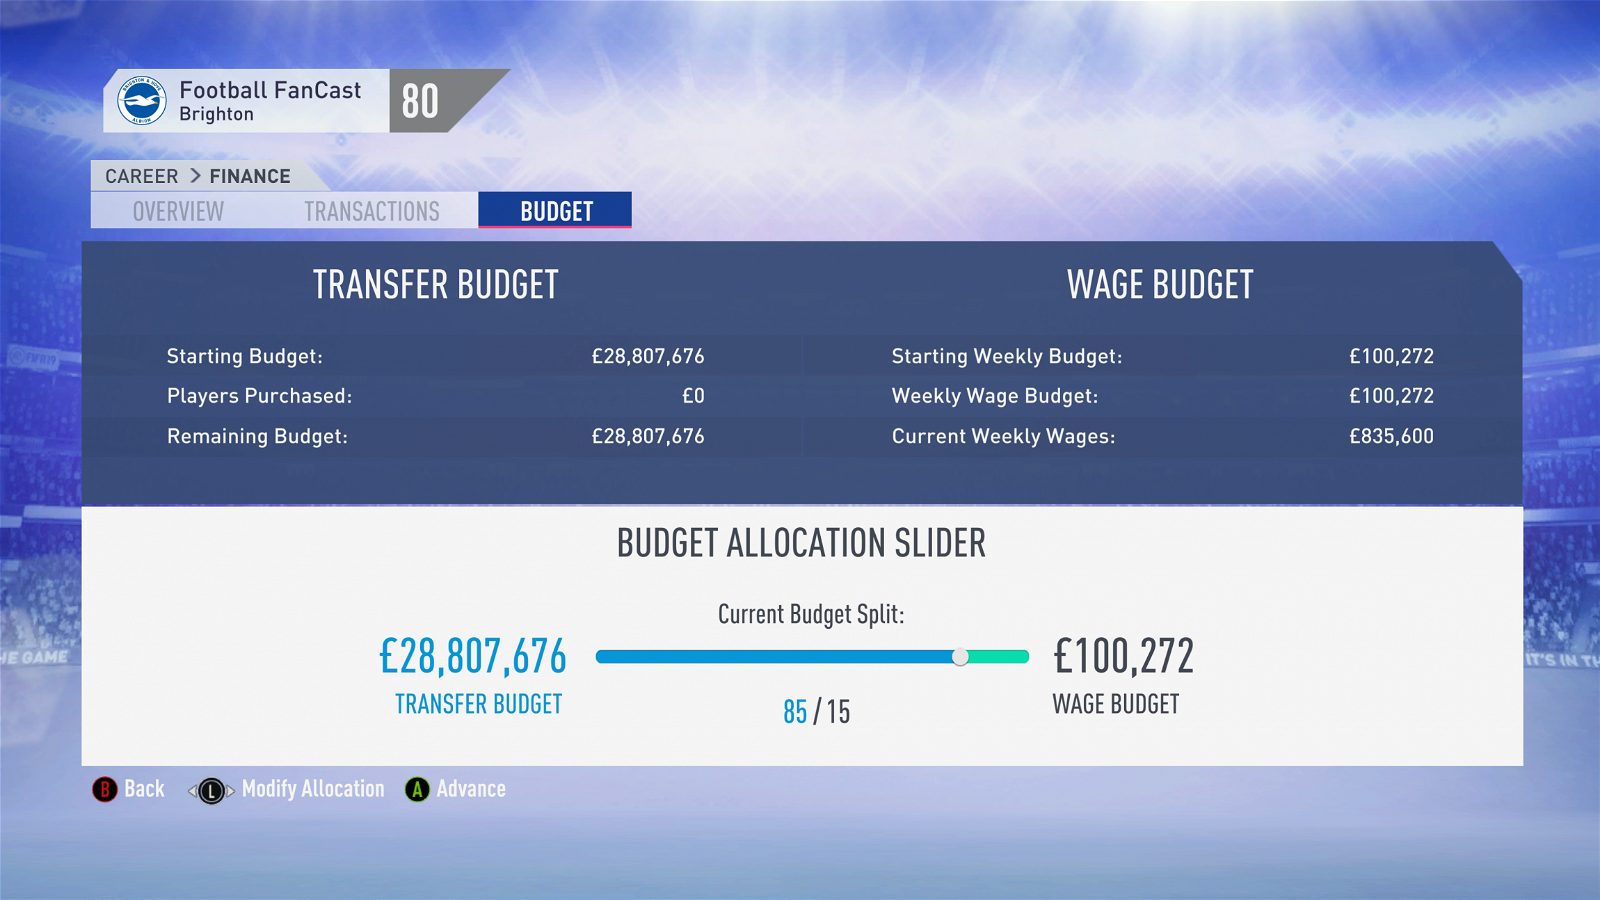 FIFA 19 Career Mode - Brighton Budget